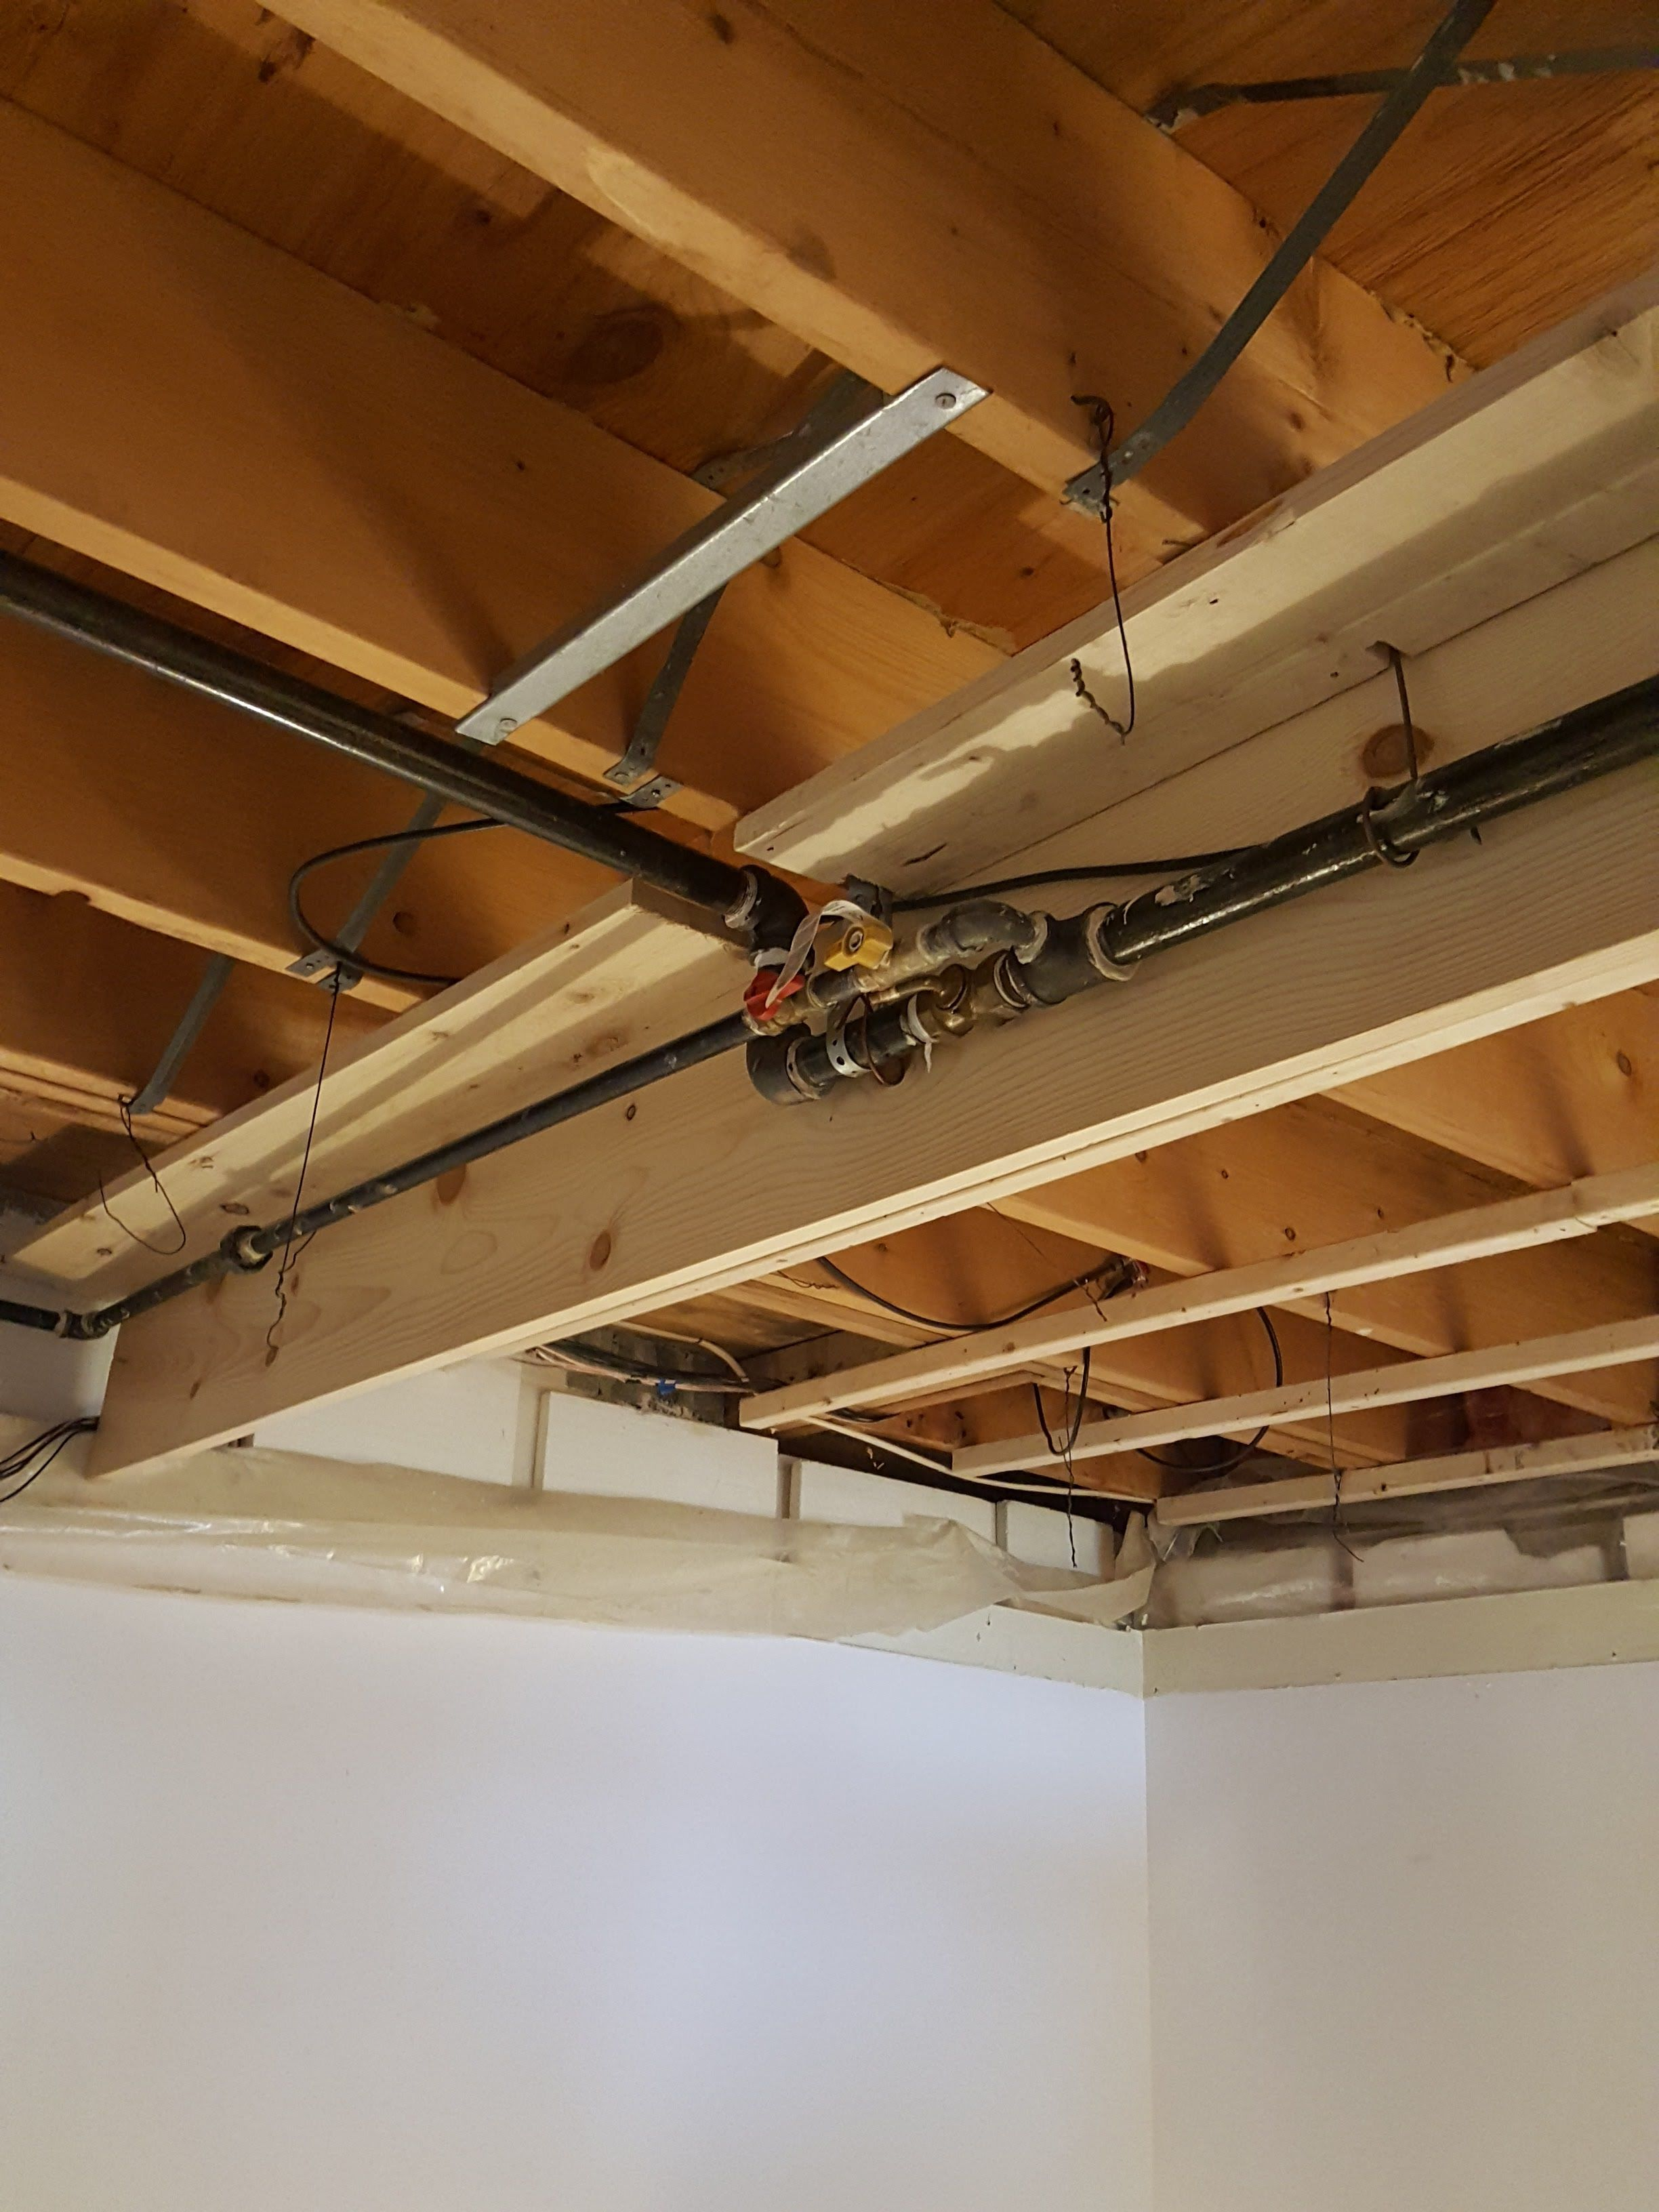 I Decided To Raise The Ceiling Up To The Floor Joists Of The Main Level And Create A Faux Beam For The Gas Line Faux Beams Basement Craft Rooms Beams